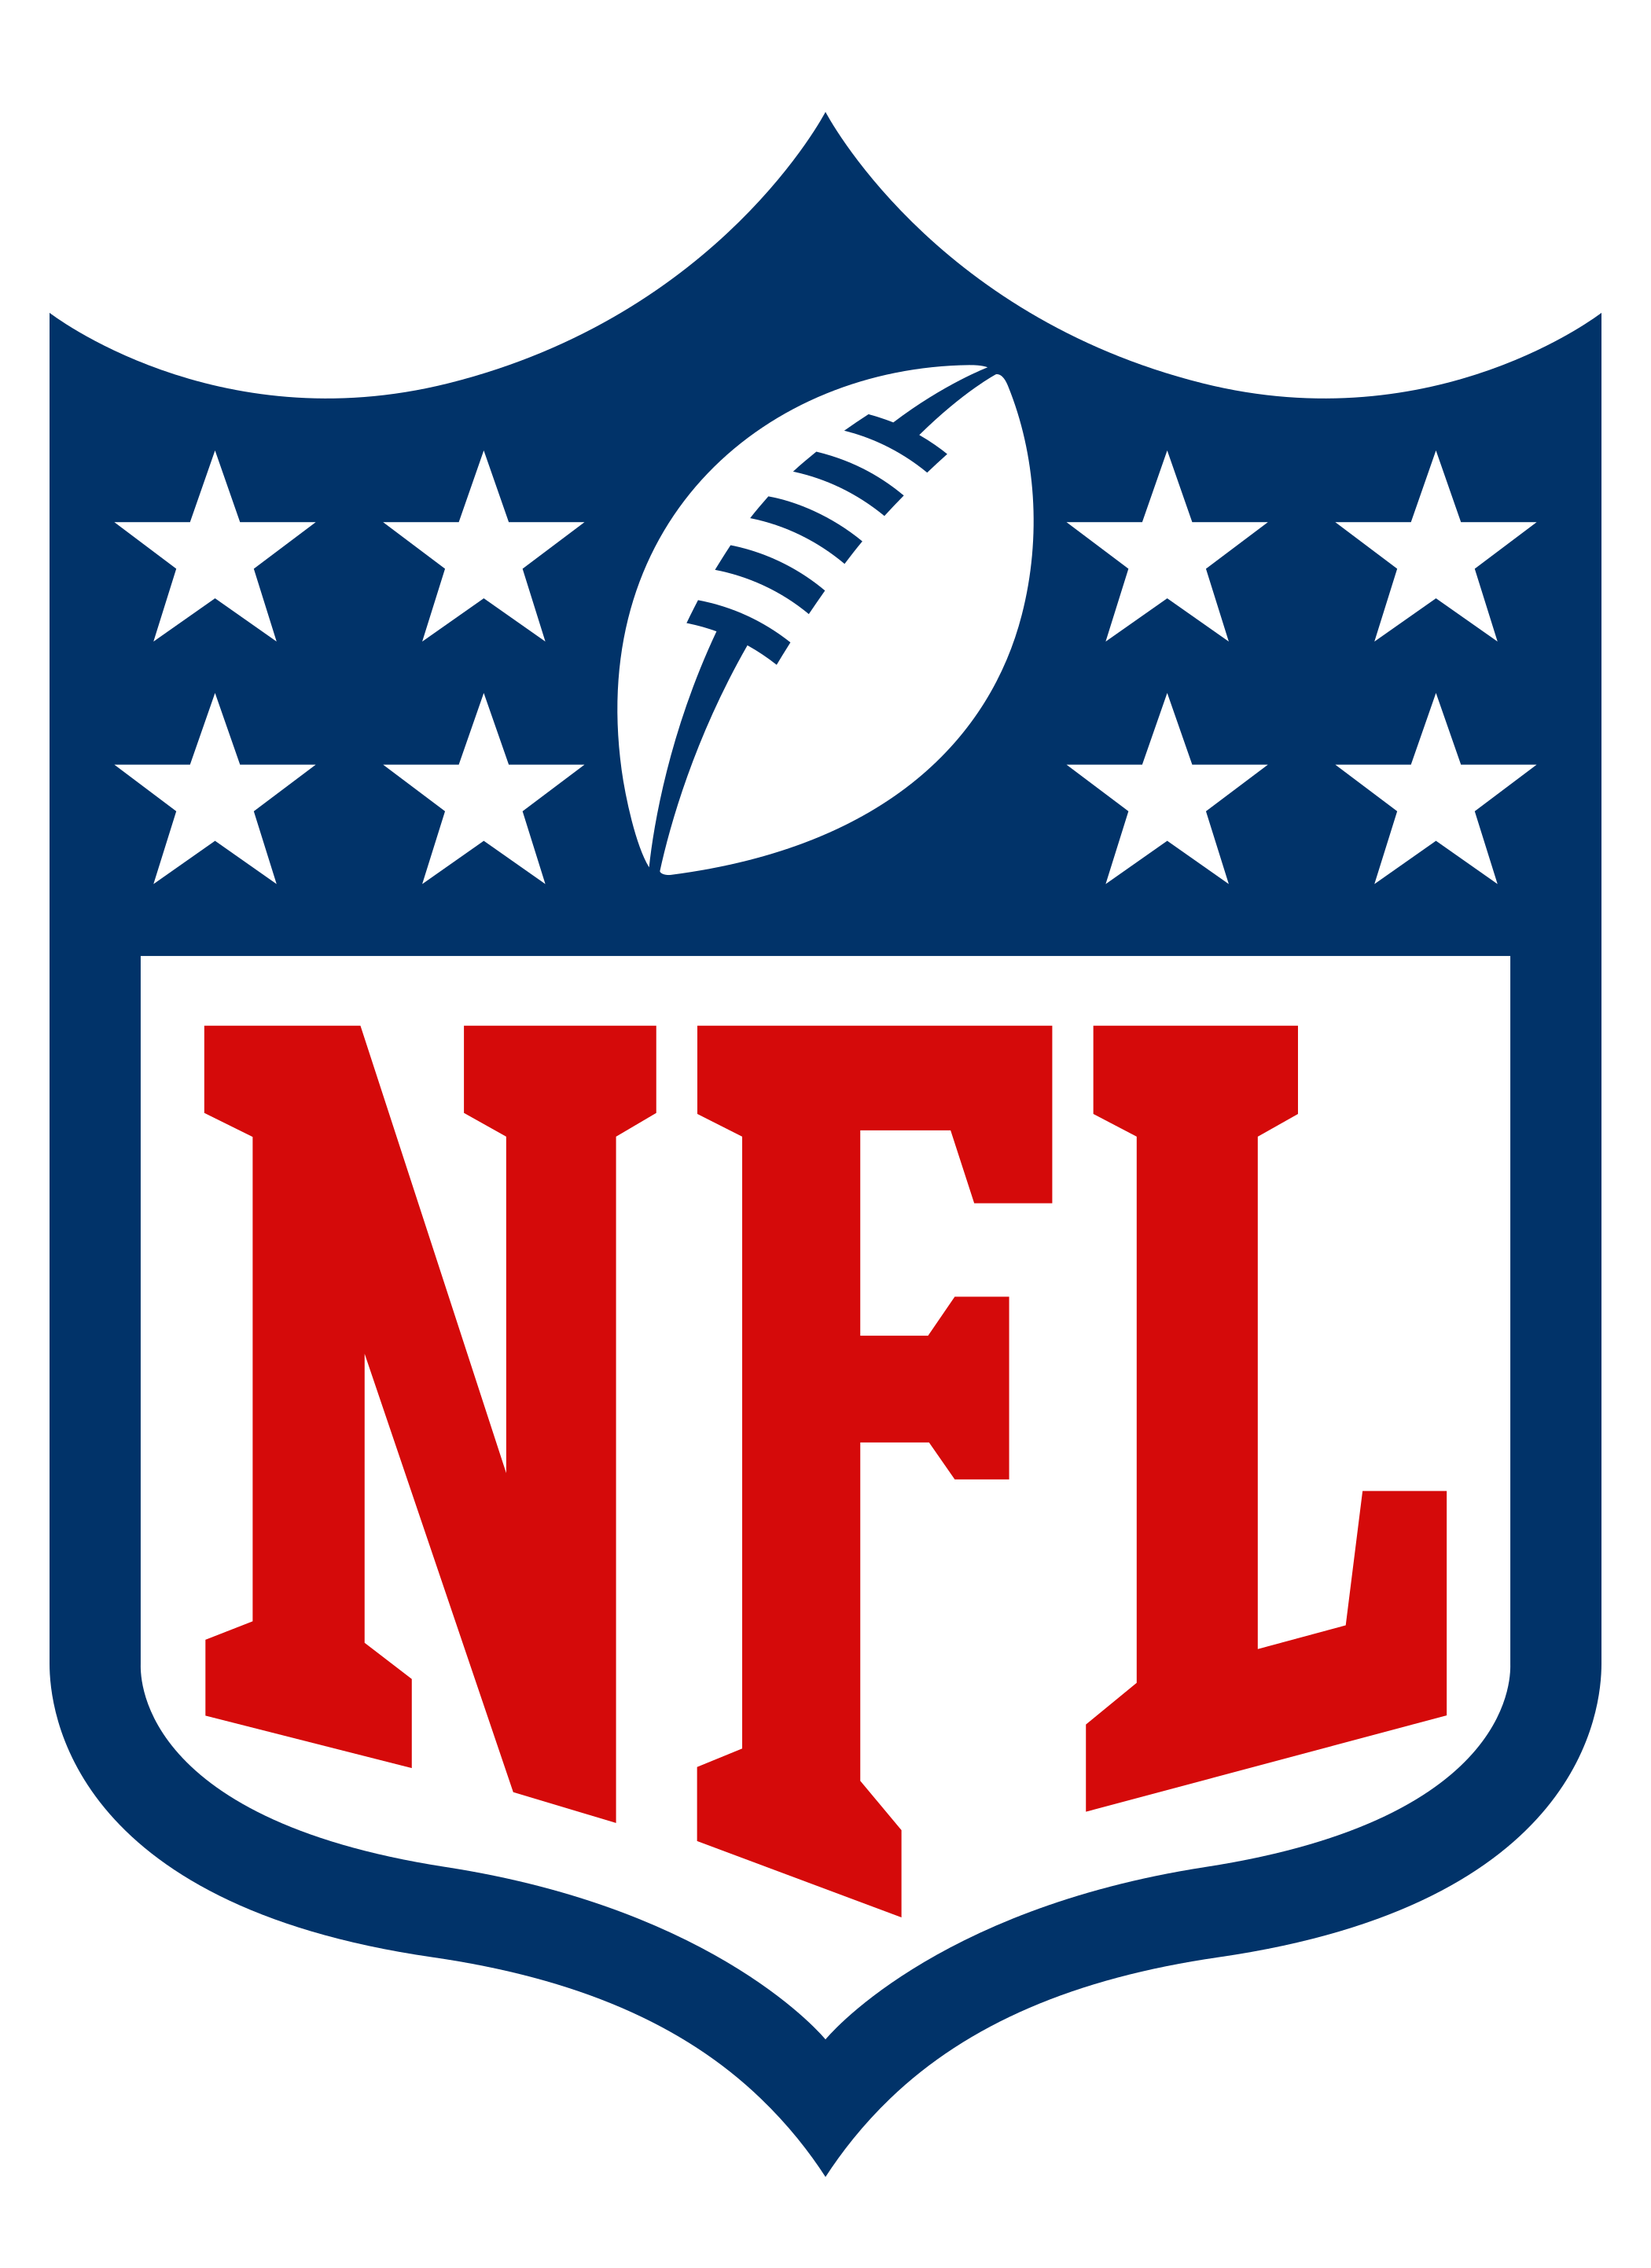 nfl logo 1 - NFL Logo - National Football League Logo